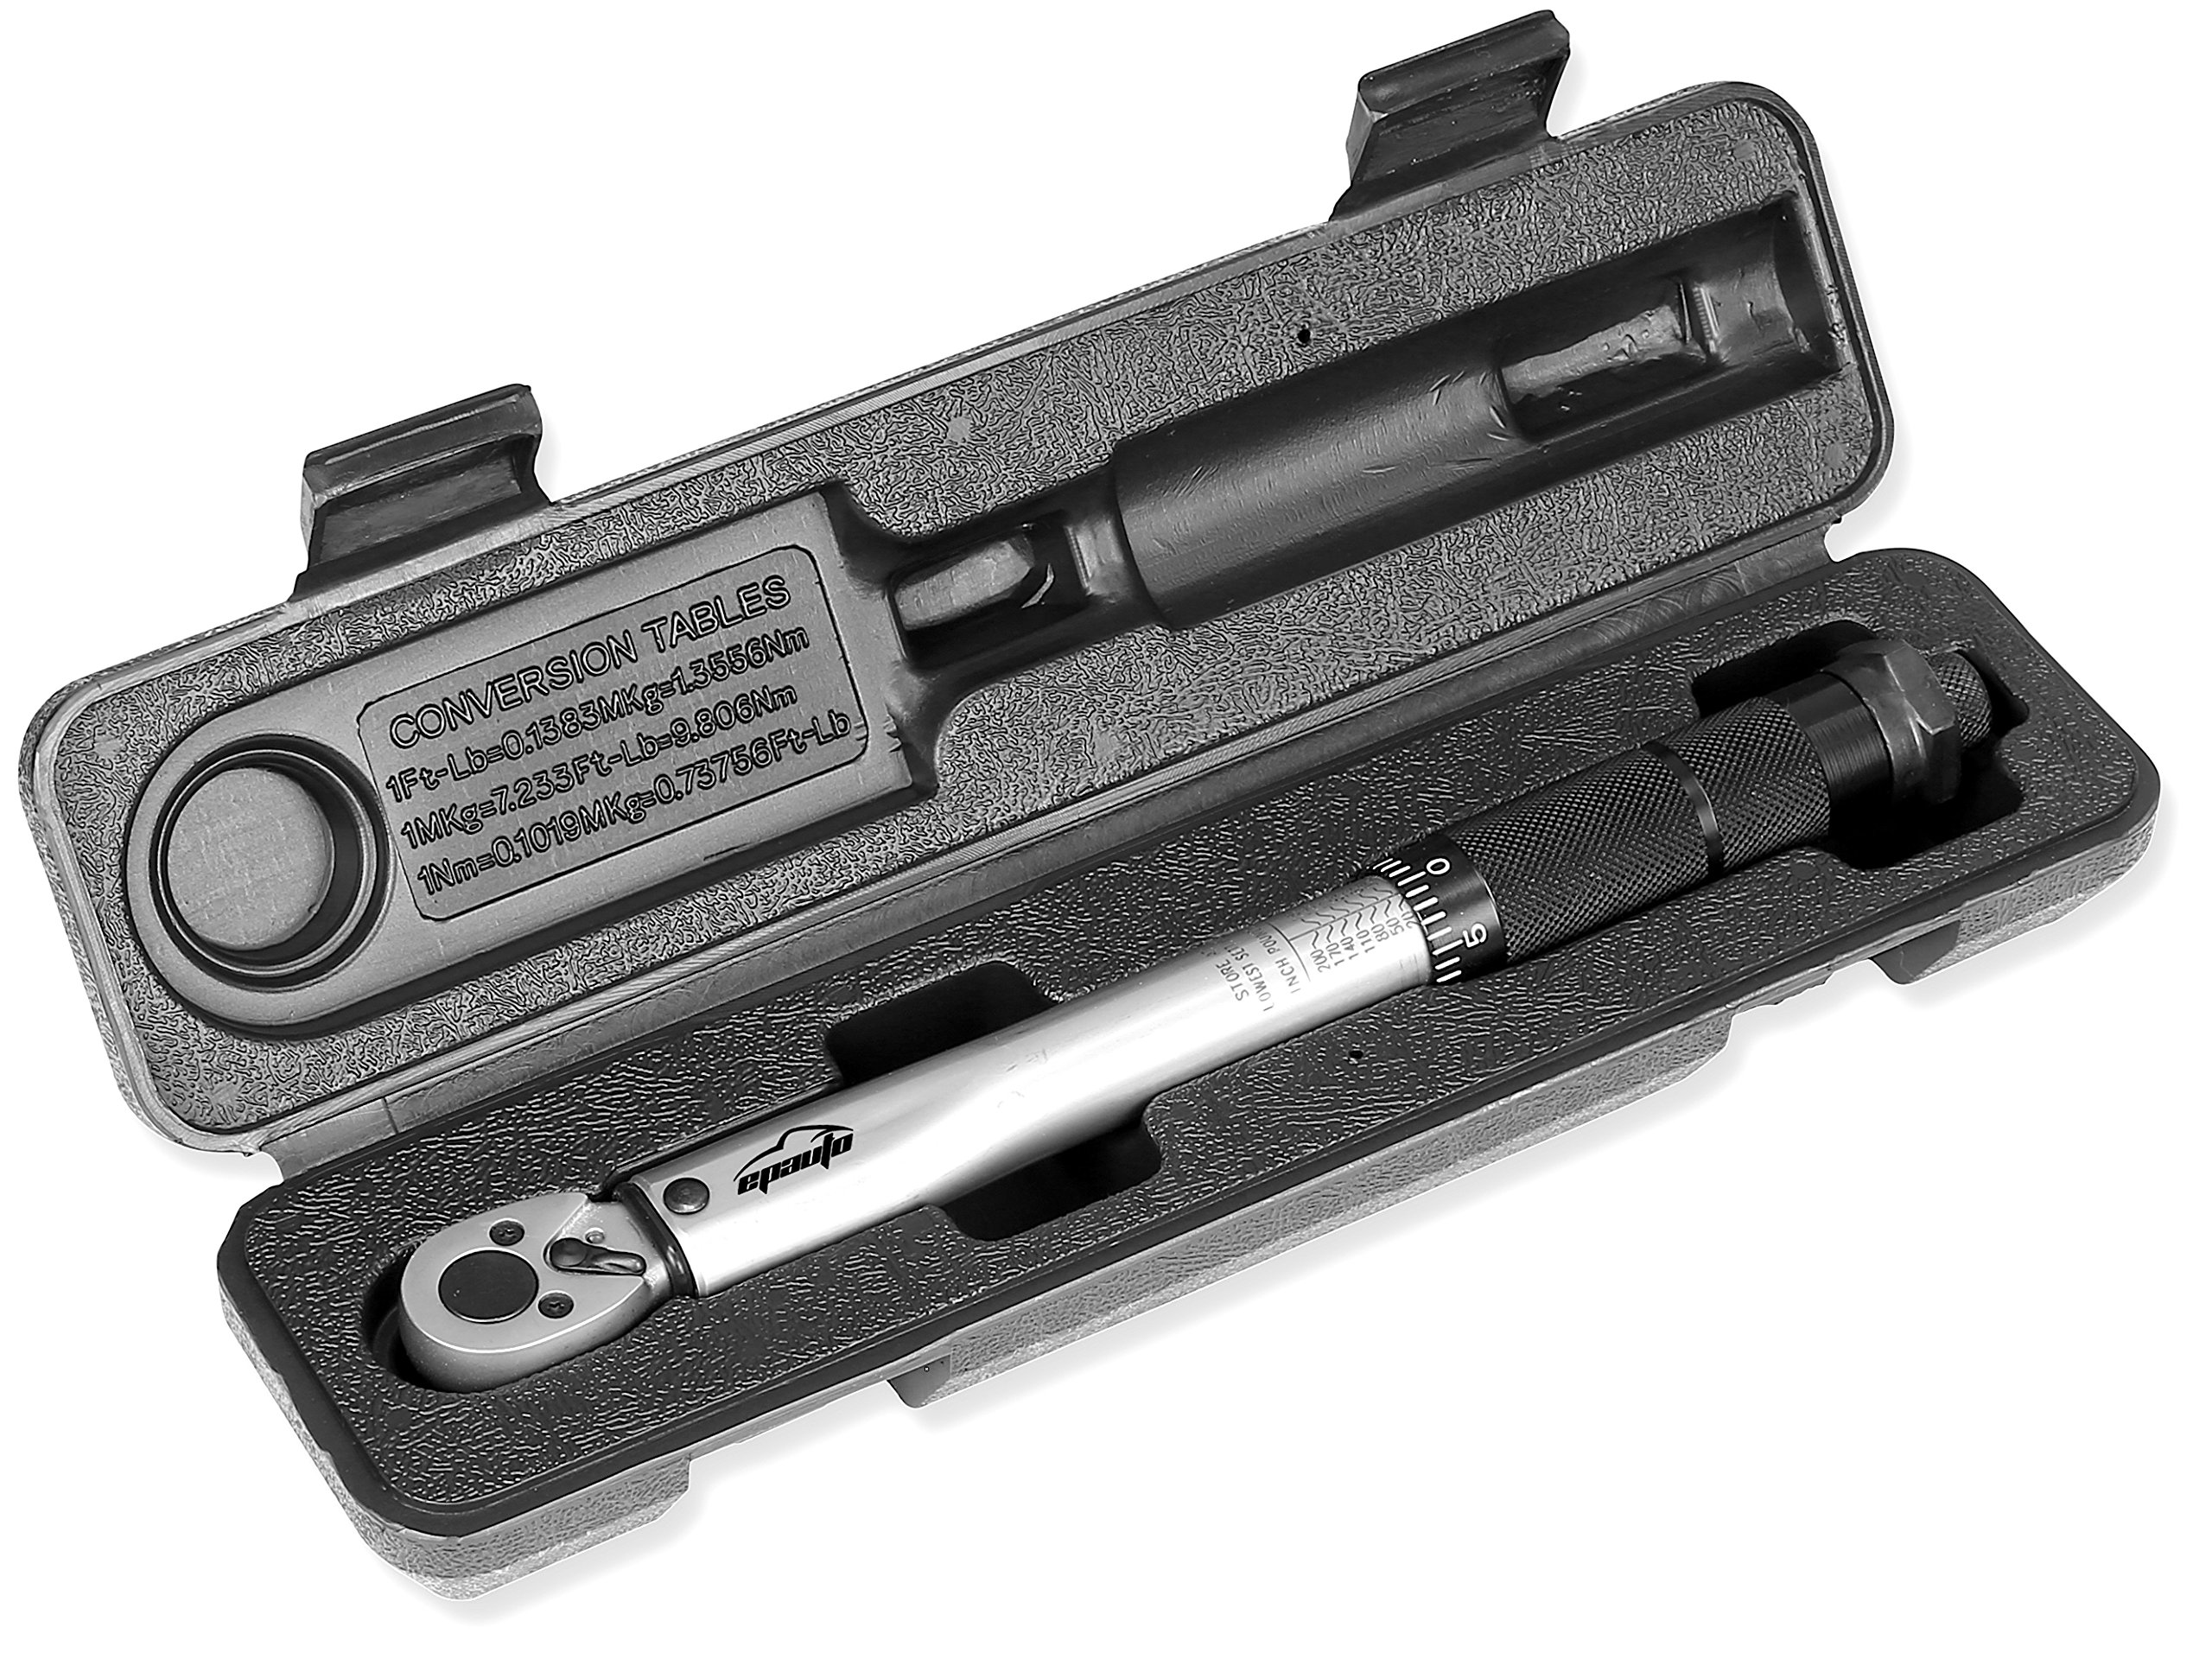 EPAuto 1/4-Inch Drive Click Torque Wrench (20-200 in.-lb. / 2.26~22.6 Nm) by EPAuto